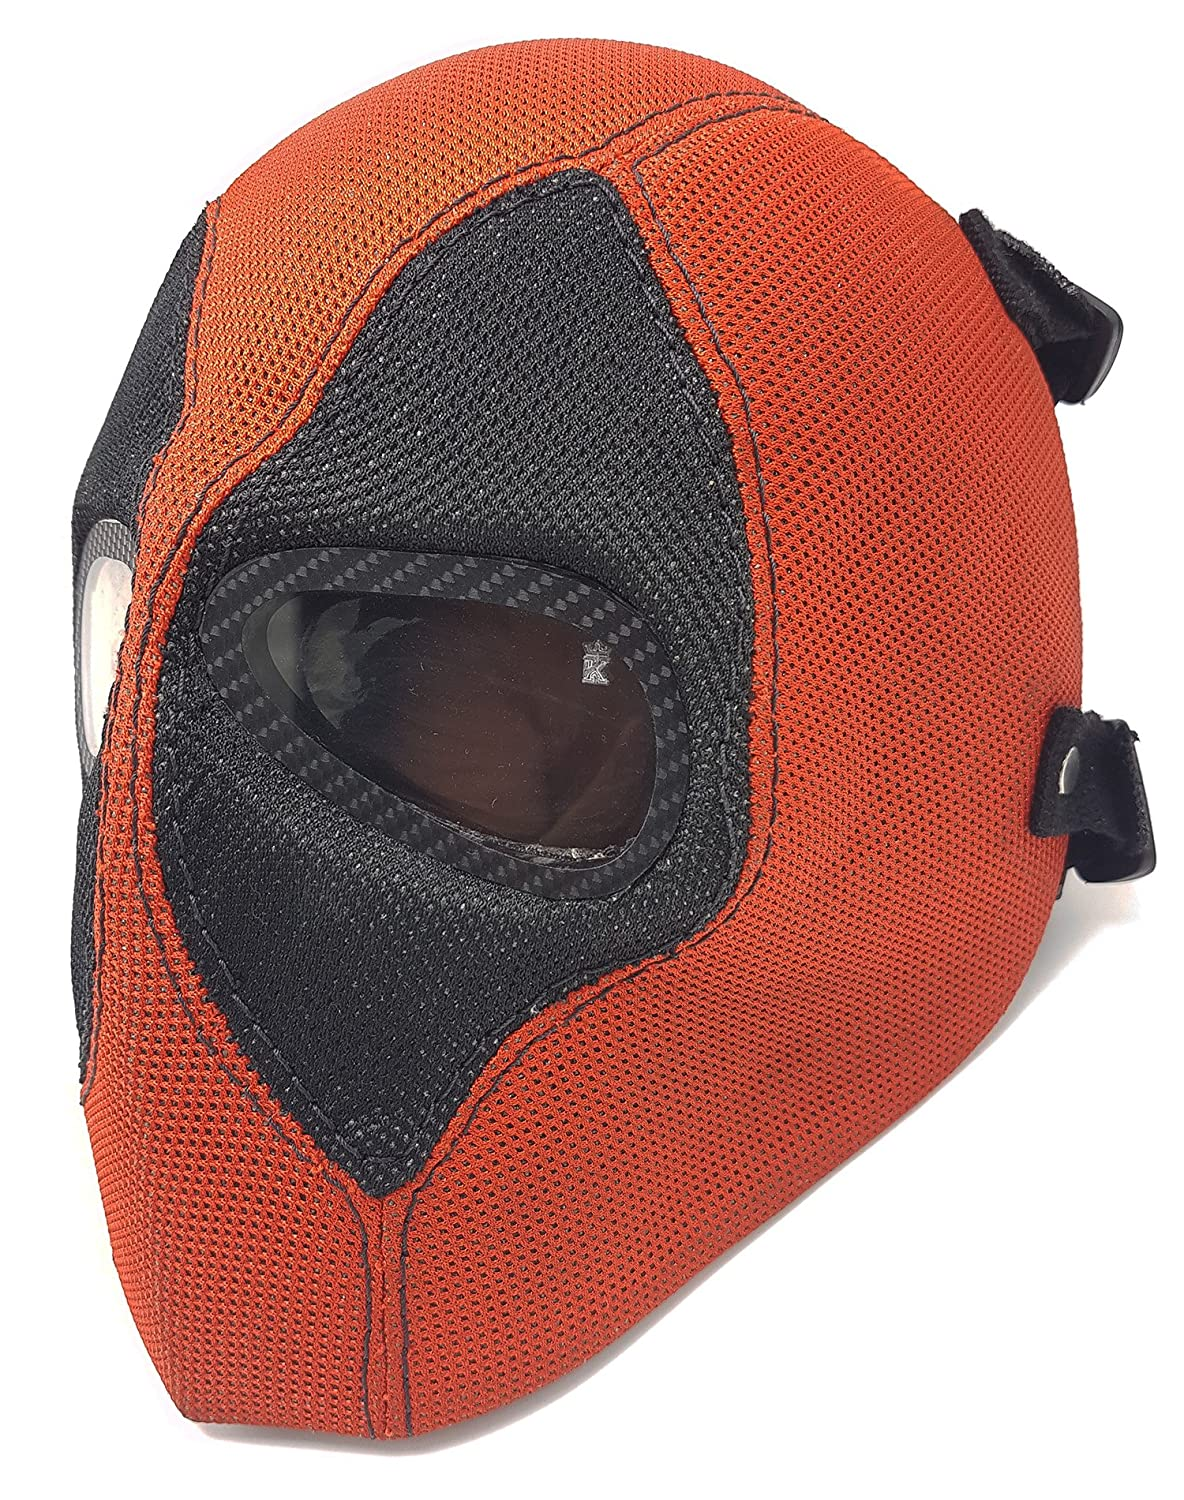 Amazon.com : DeadPool Sponge Airsoft Mask Army of Two Mask Protective Gear Face Masks Sporting Goods Protective Masks : Sports & Outdoors